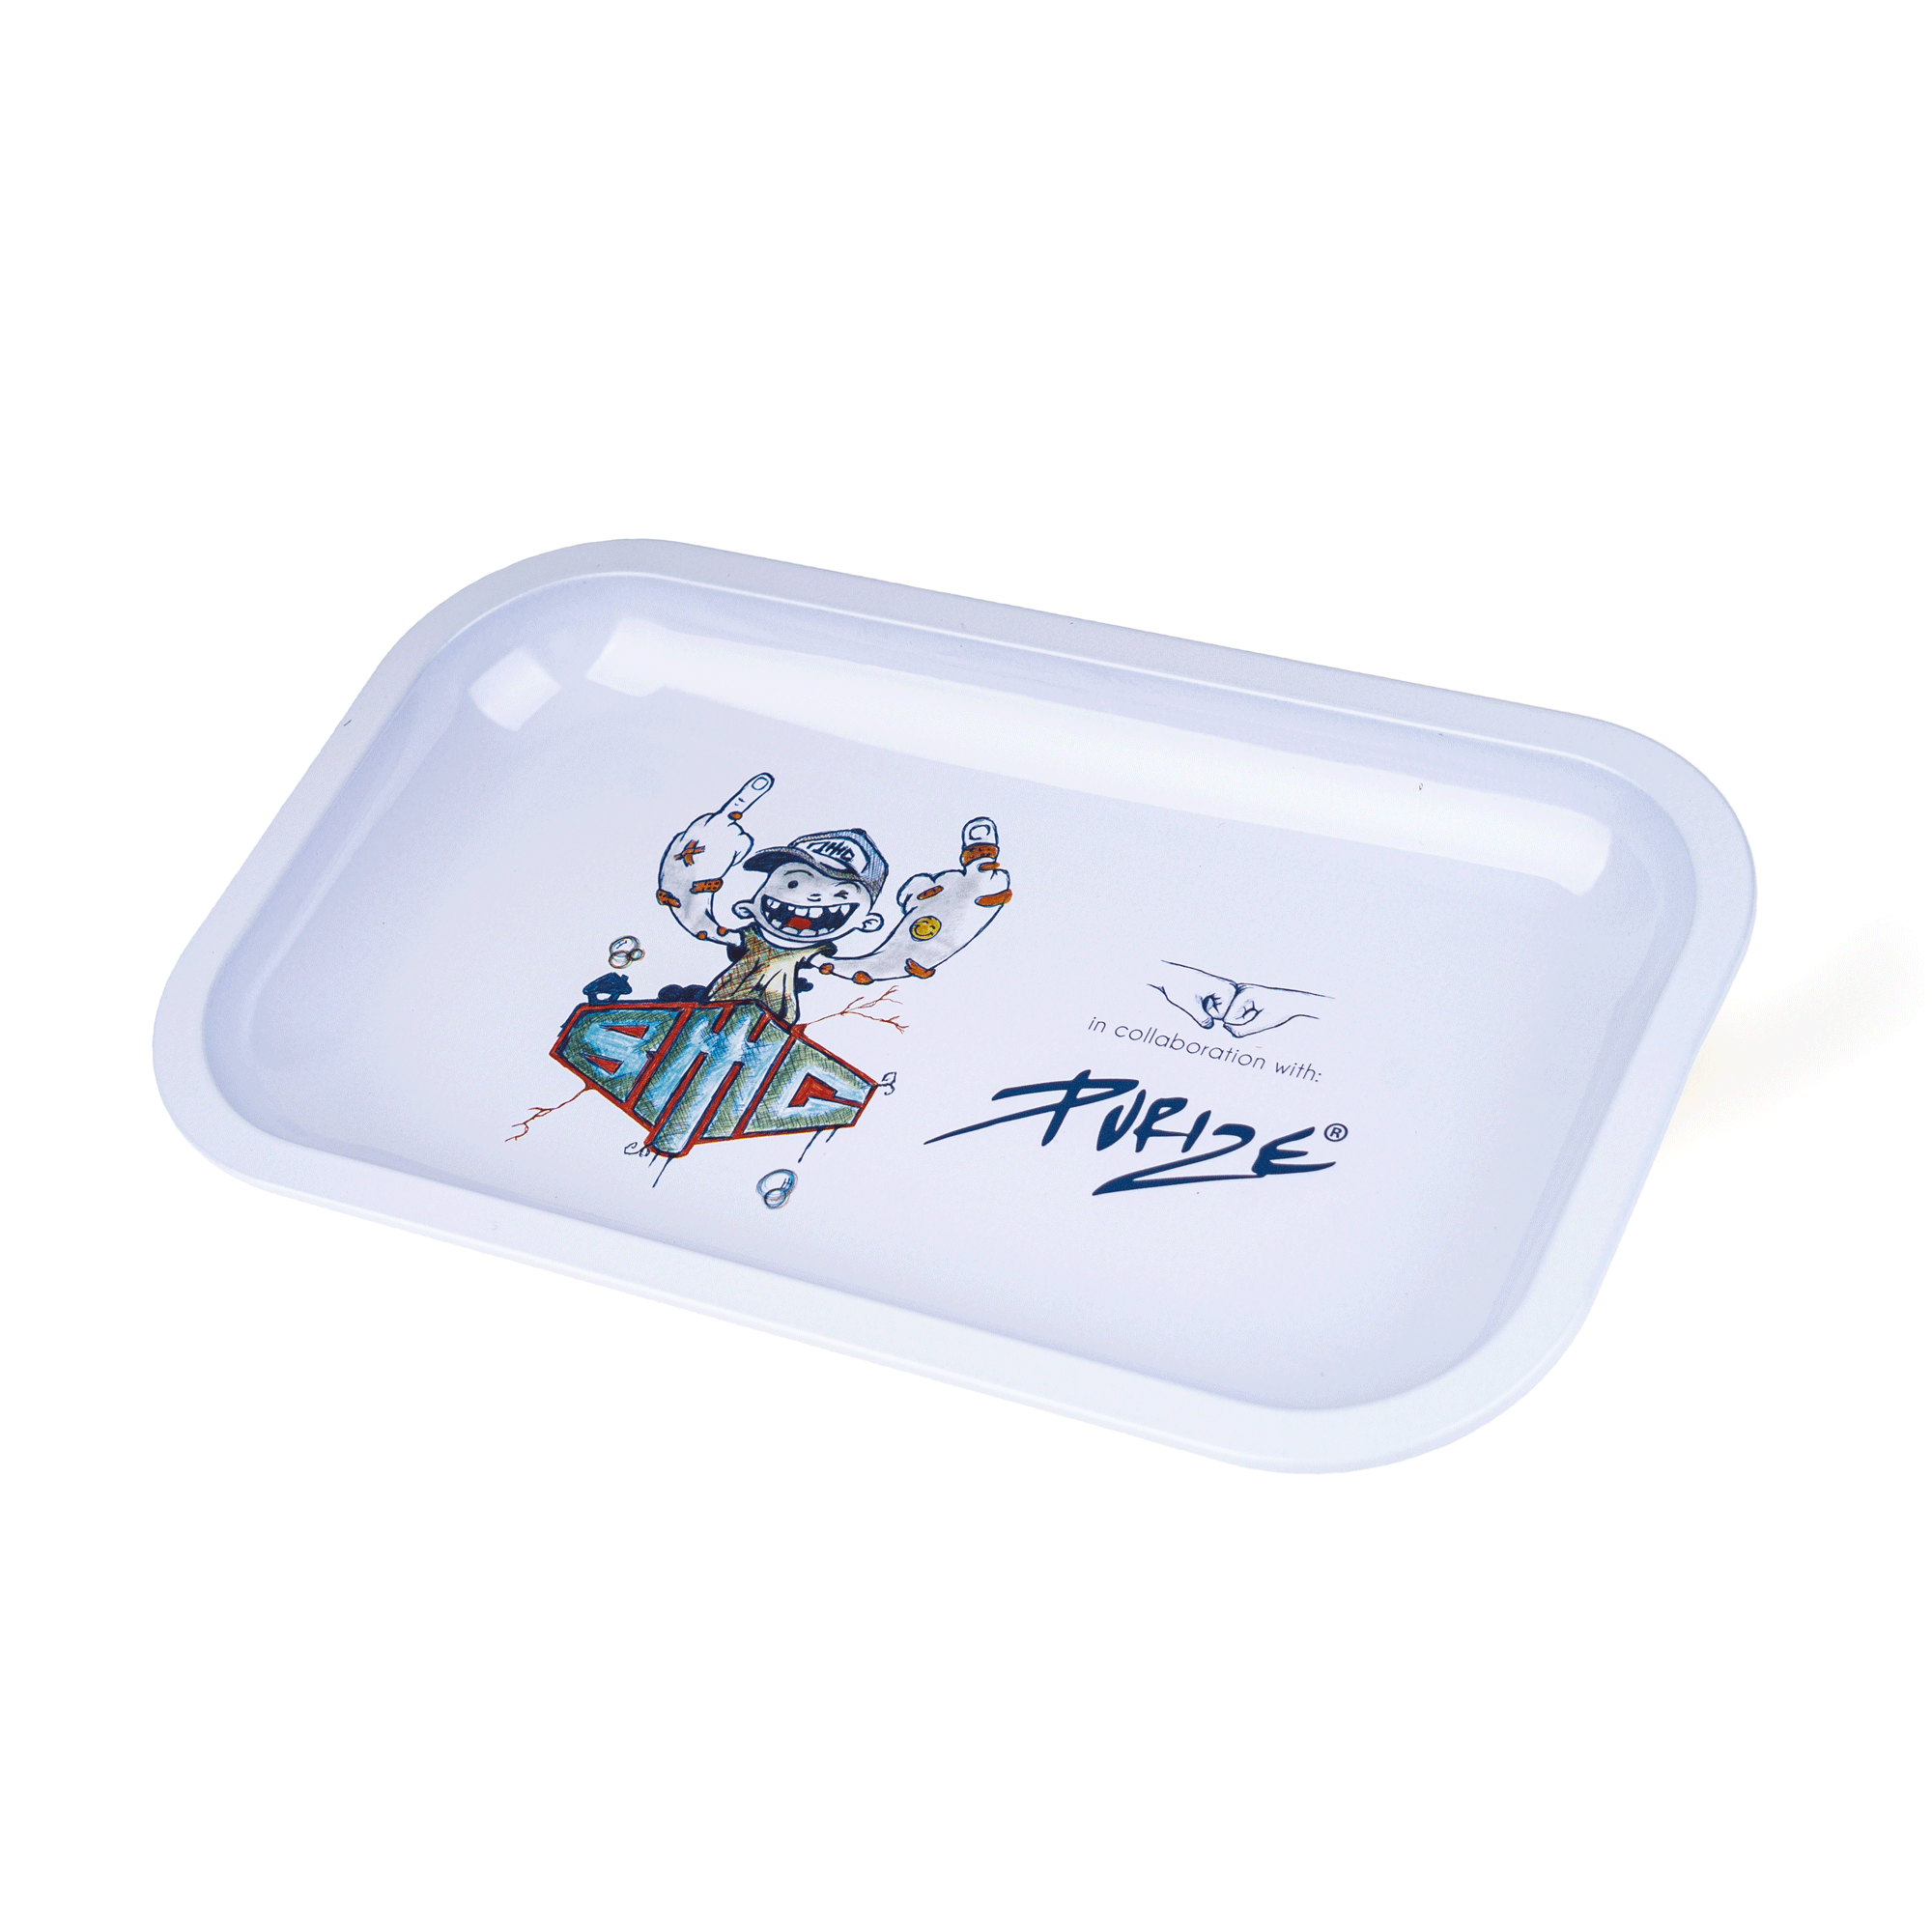 PURIZE® x BMG Metal Tray I Limited Special Edition